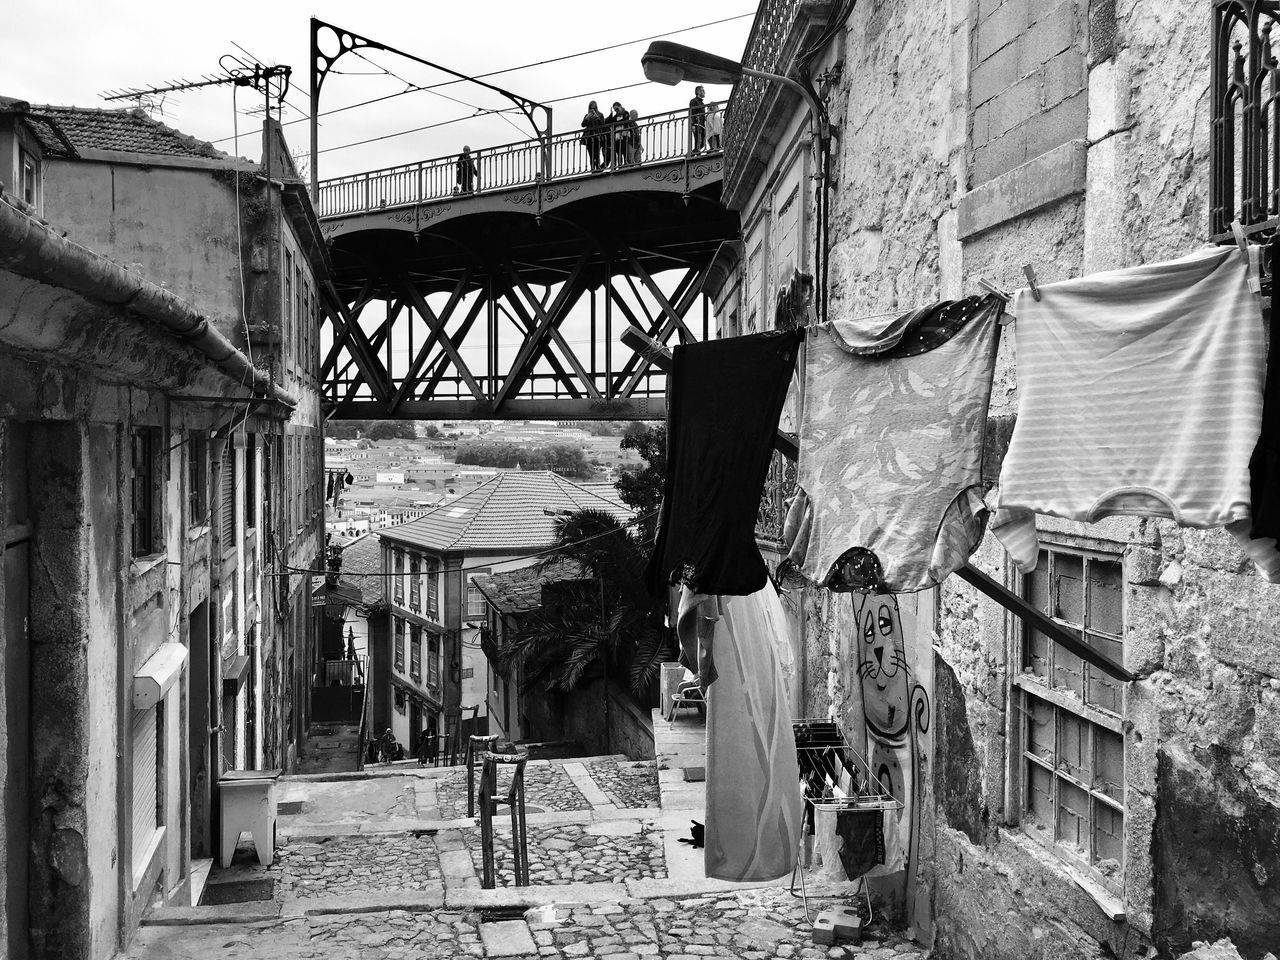 Live For The Story Porto in the summer Portugal Black And White Douro  A Place. Near Ribeira In May 2017 With 36 Graus Of Temperature Of The Air. Os The Beginning Of Summer. Come To Porto The Best Place For Hollidays For The 3 Time winning of the best place 2017